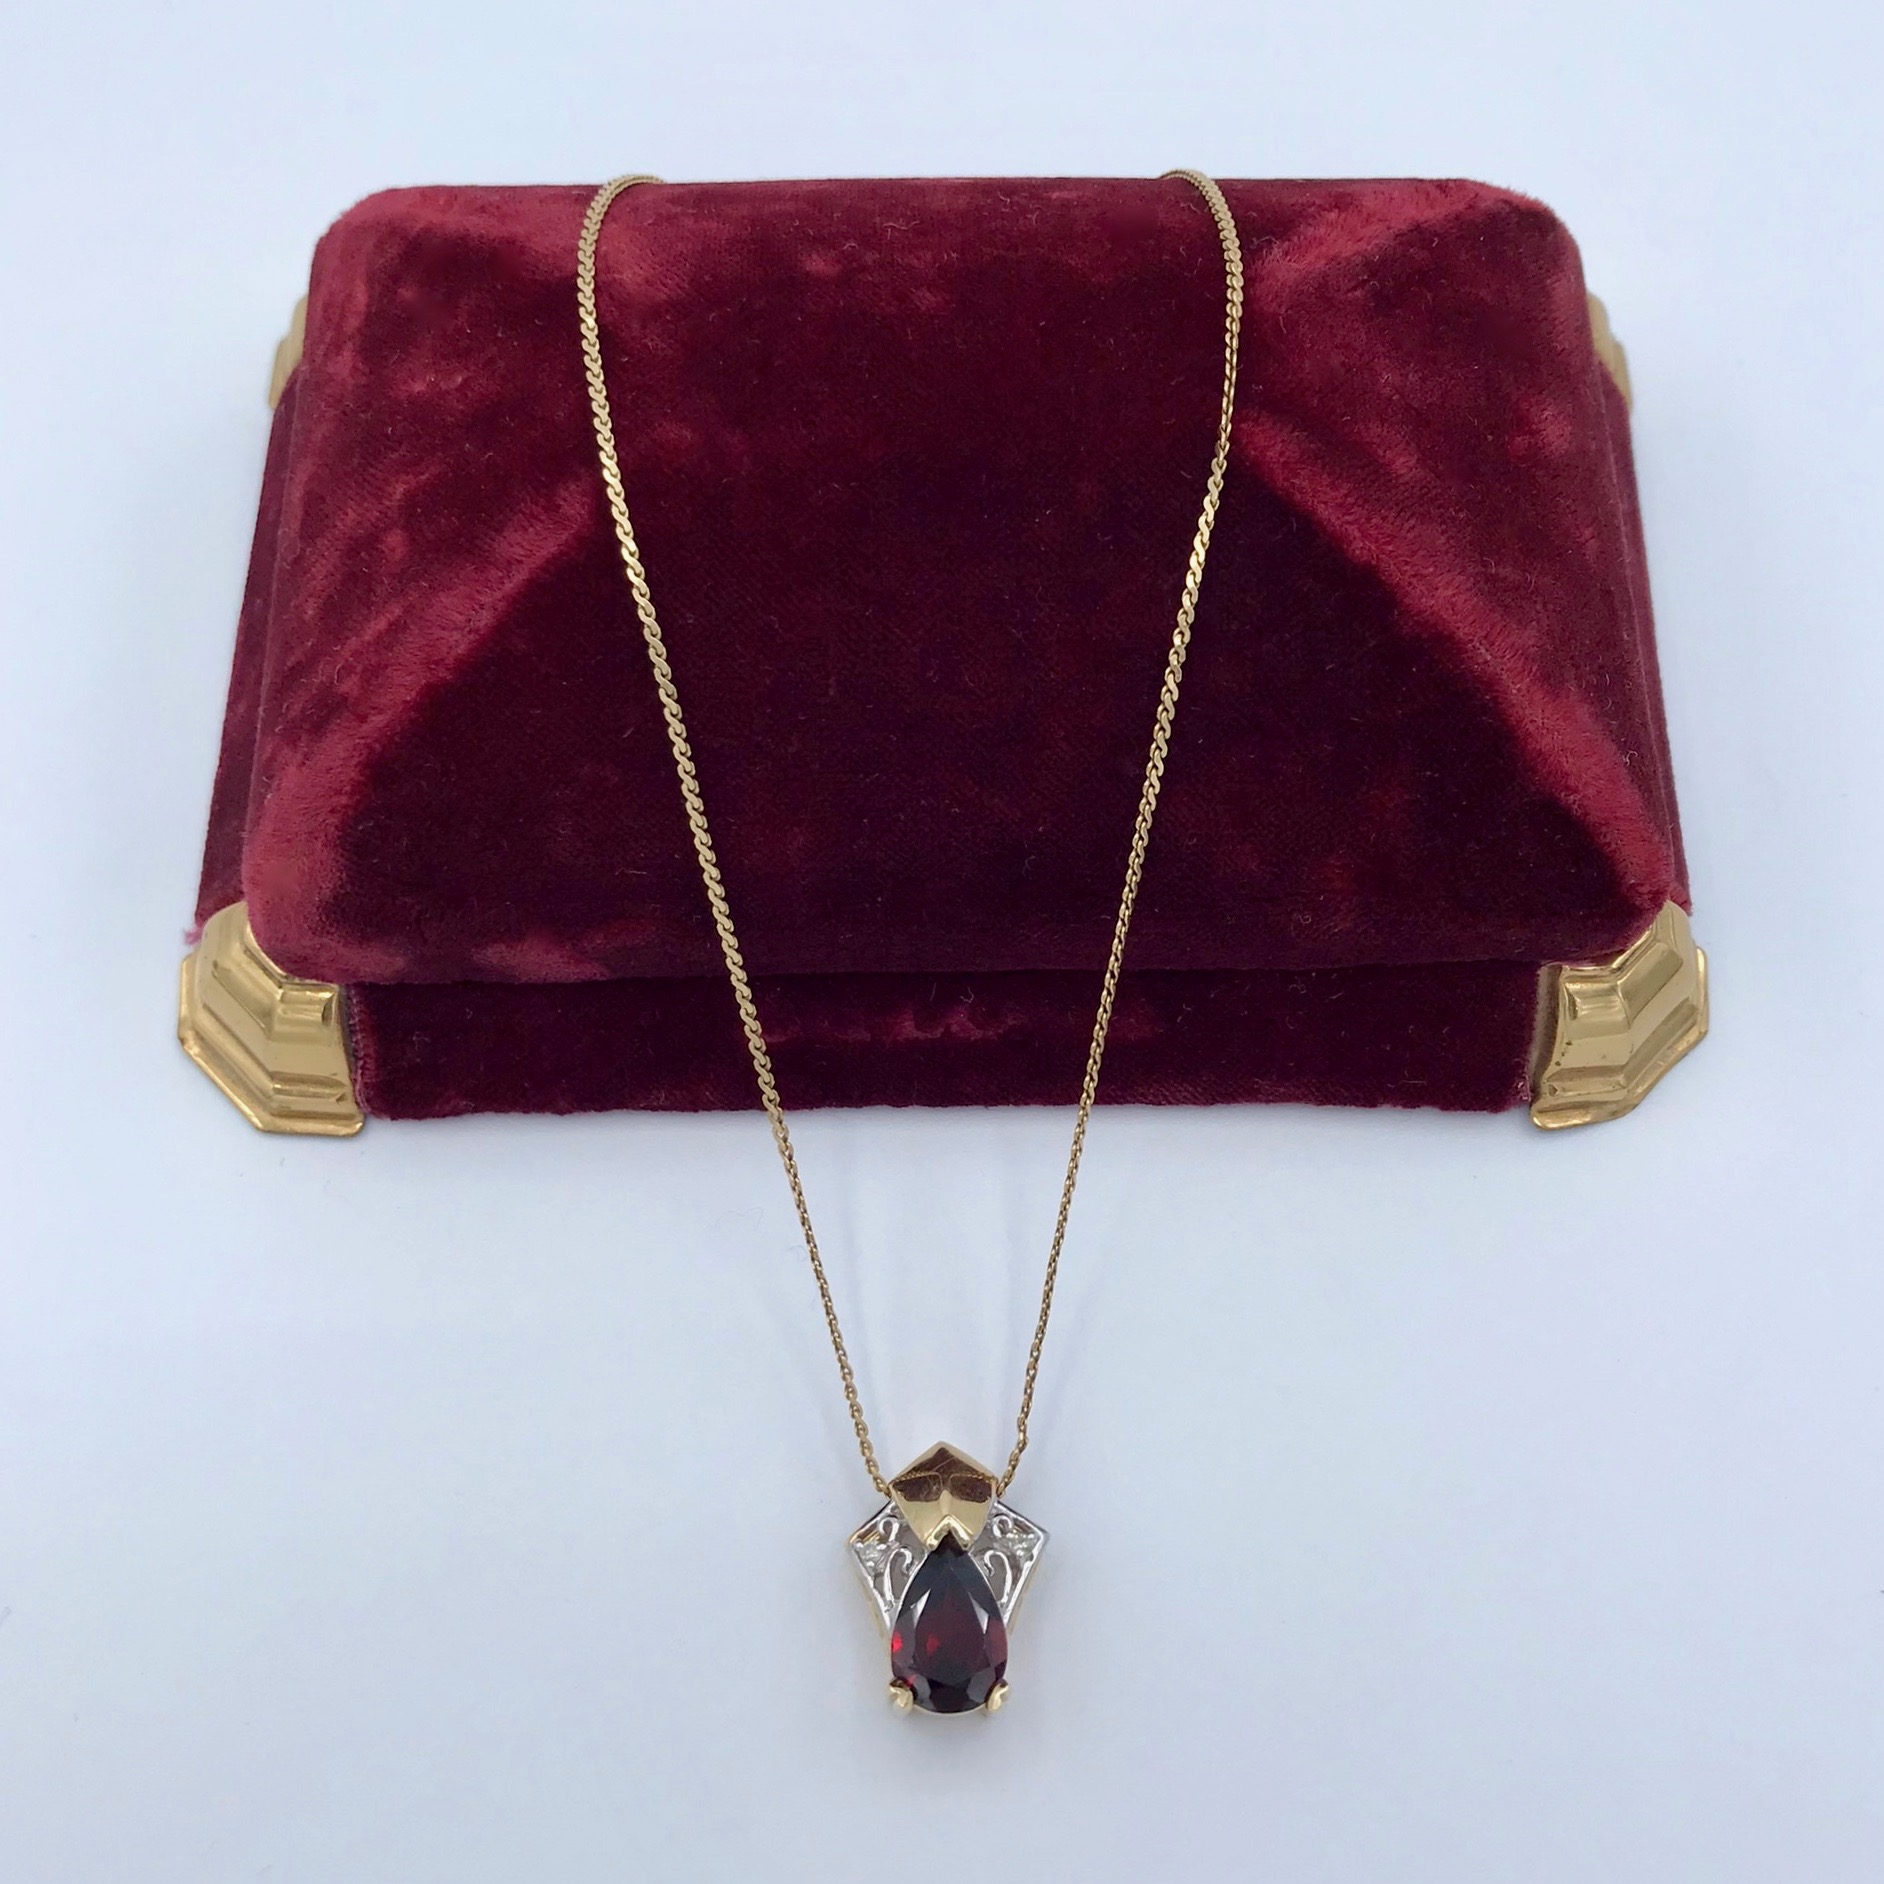 14kt Gold, Garnet & Diamond Pendant